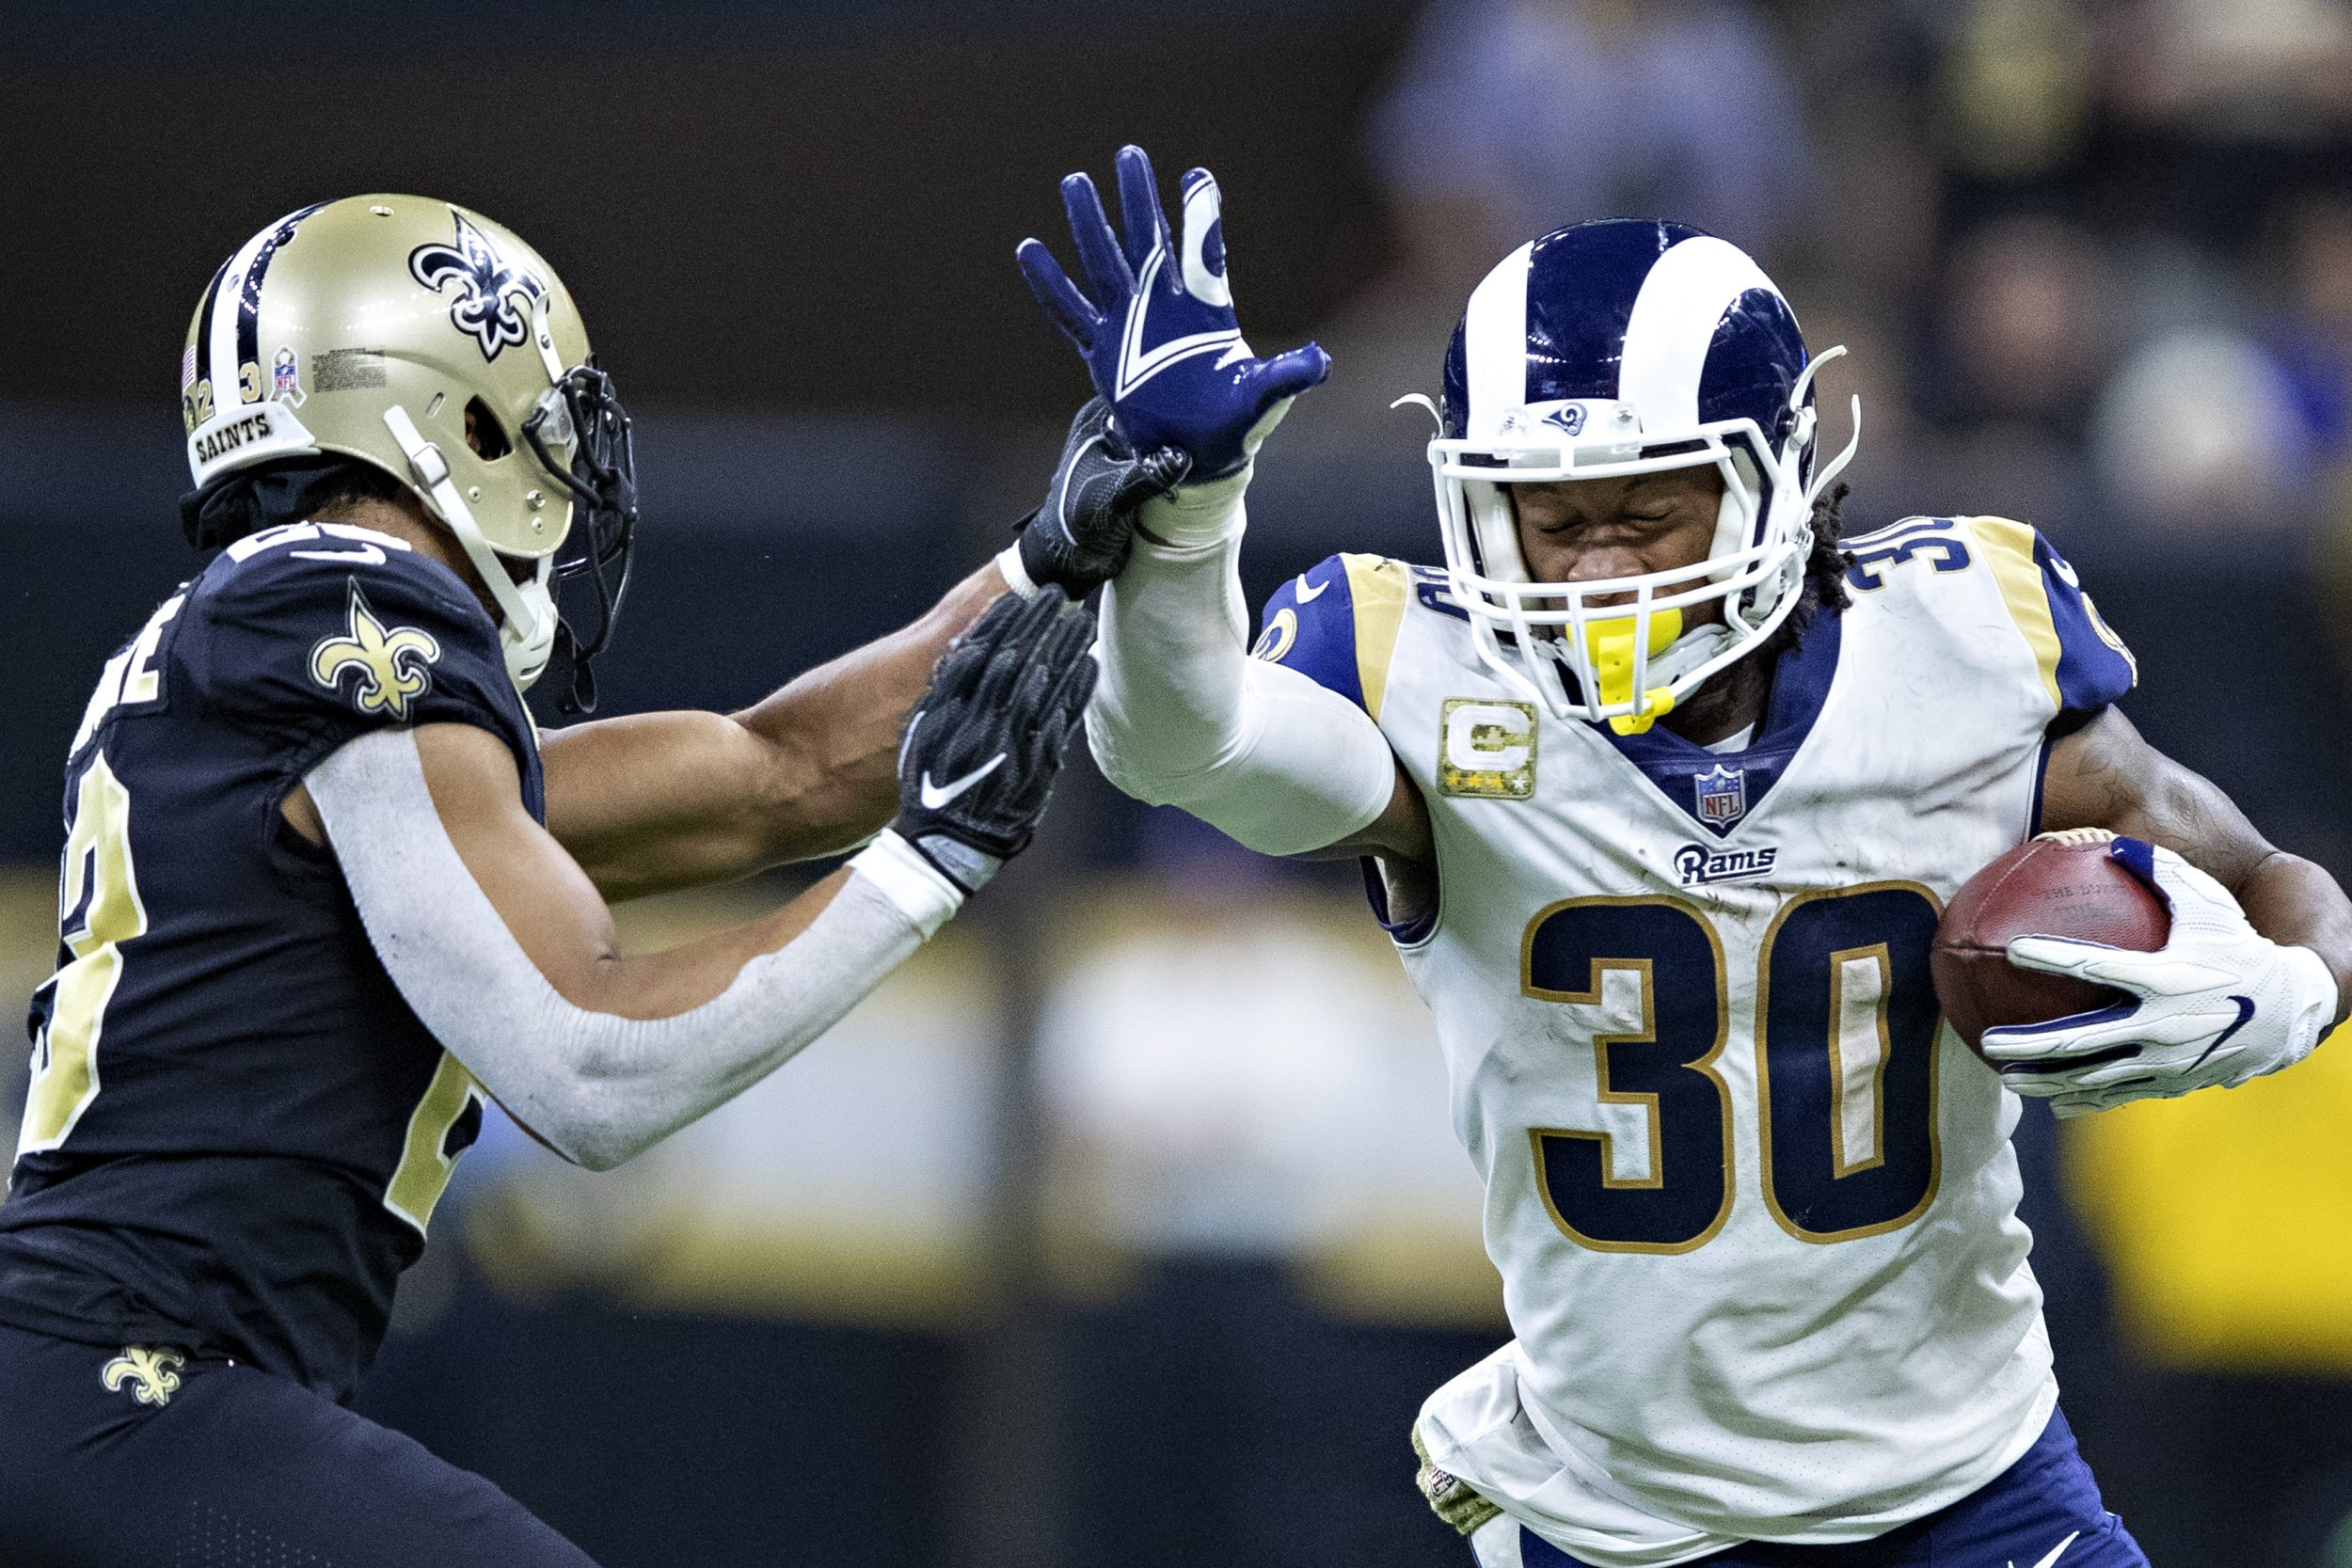 watch, live stream new orleans saints los angeles chargers